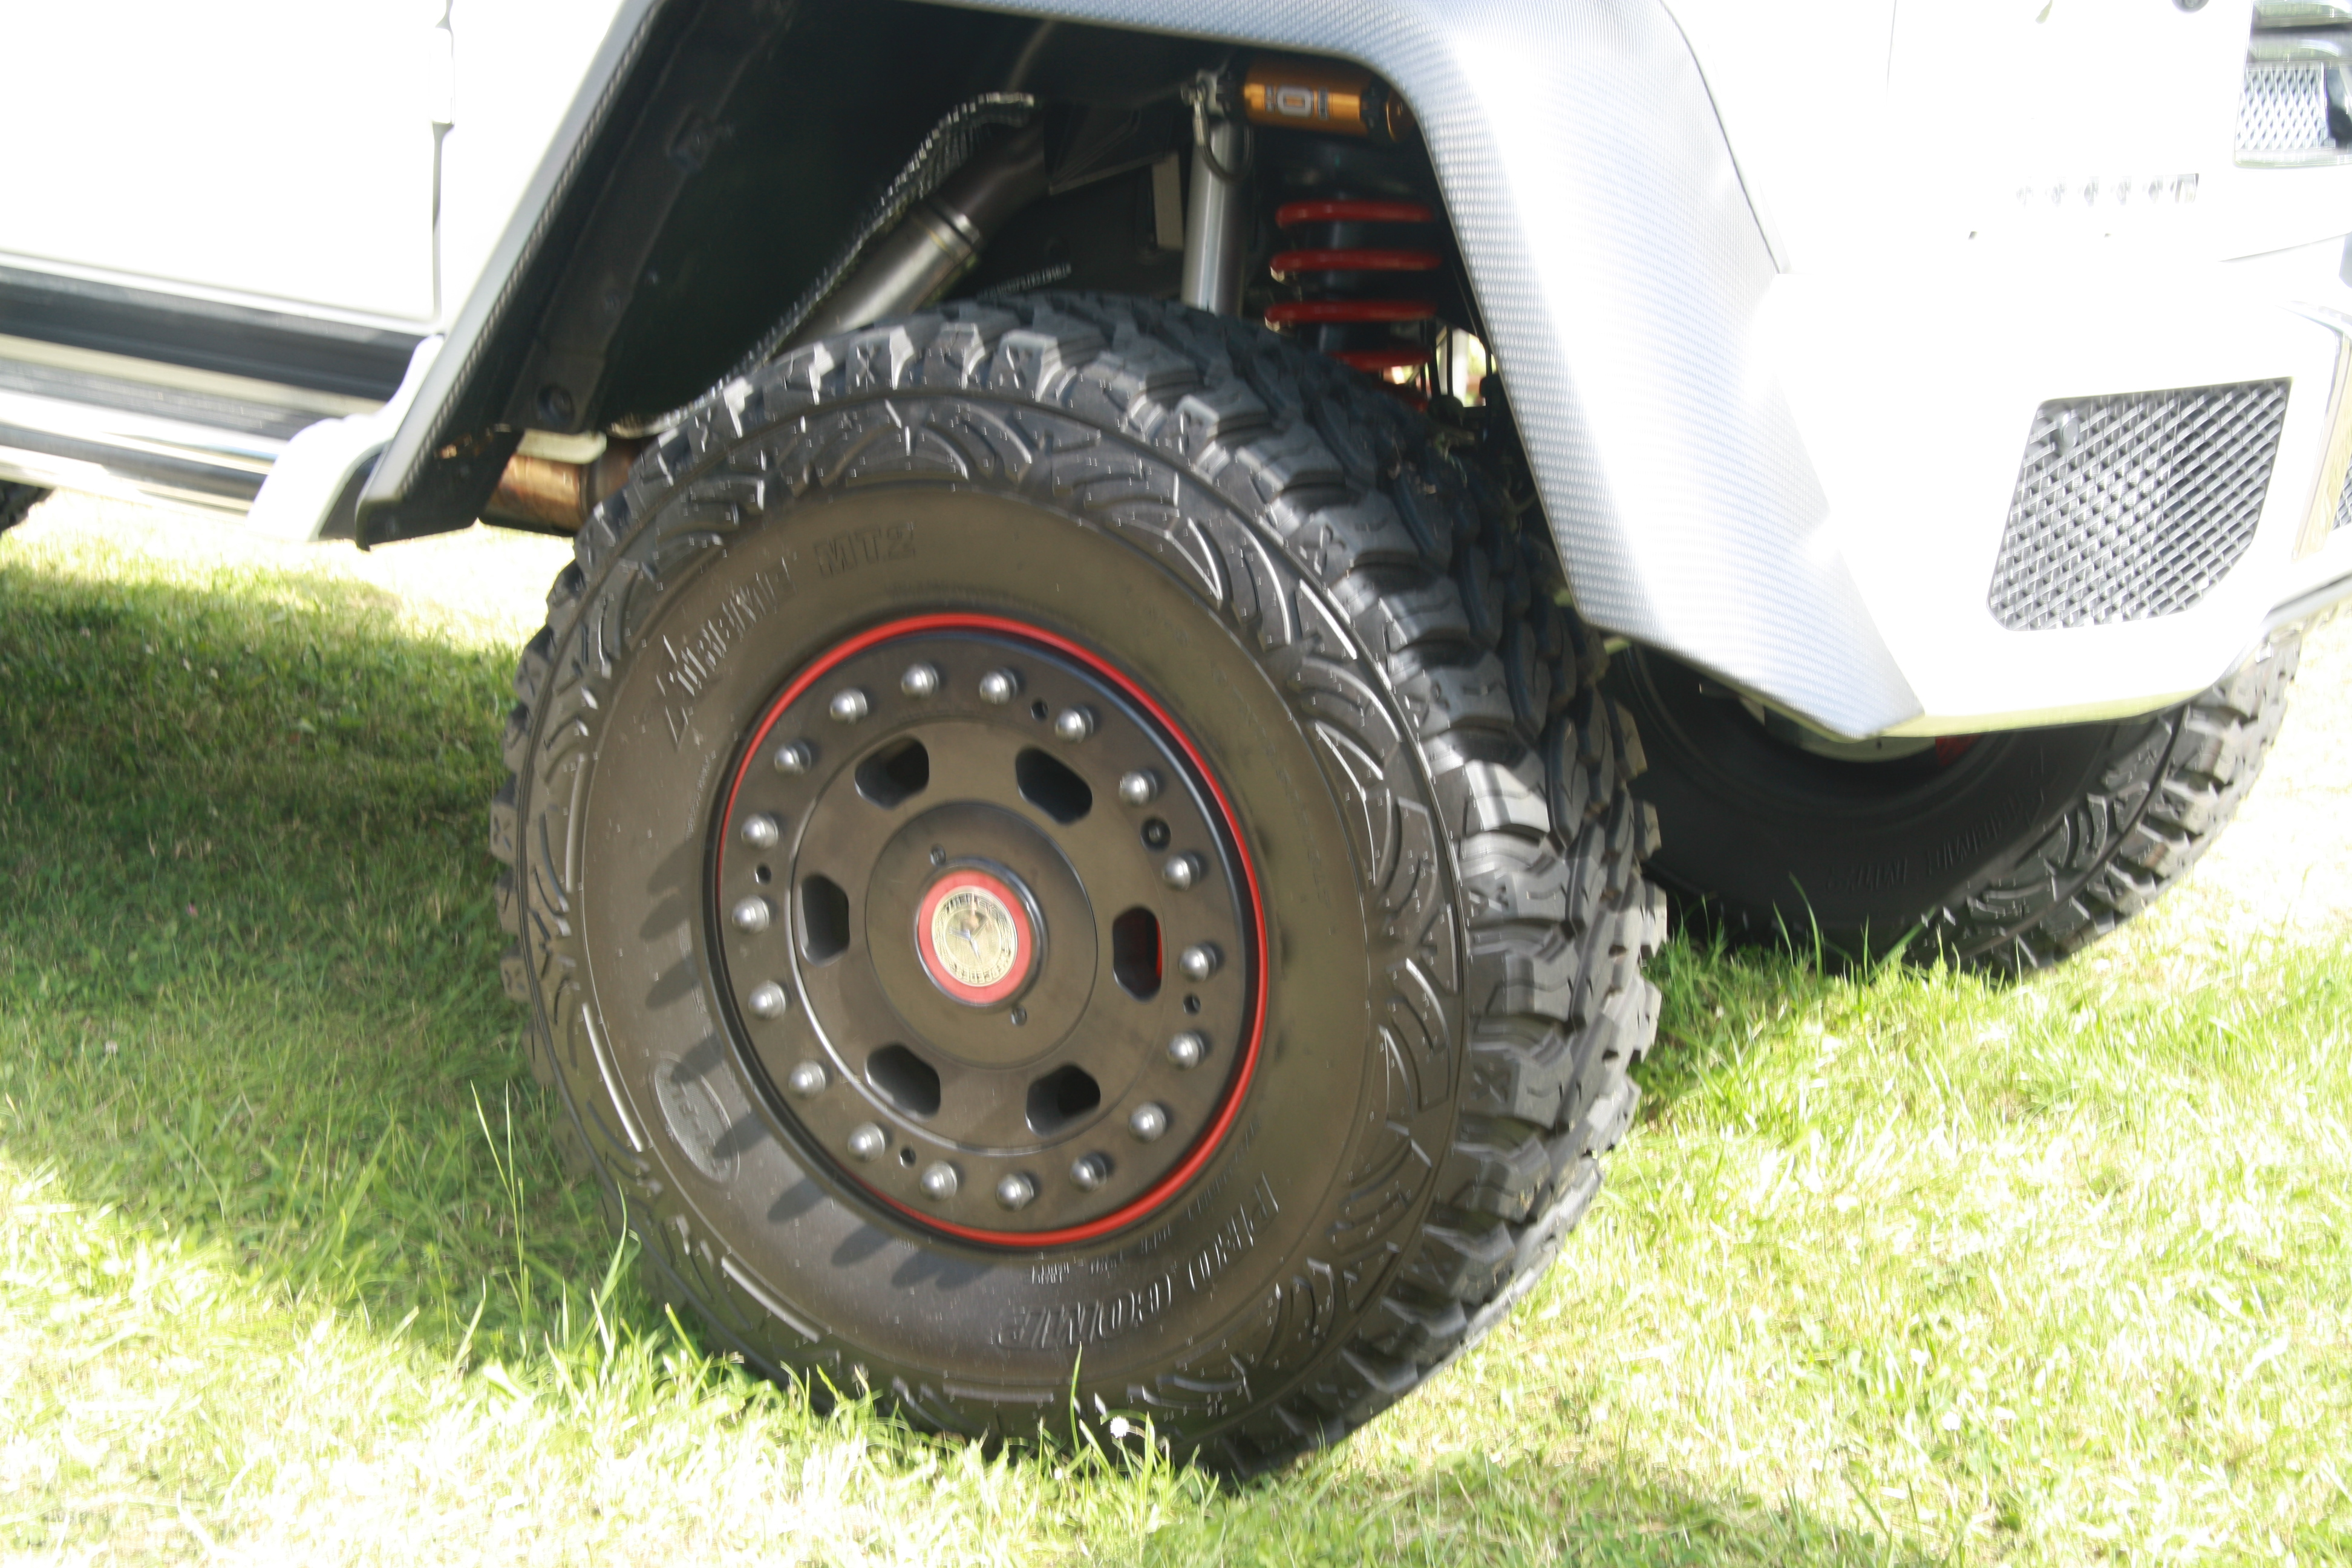 File:Wheel of Mercedes-Benz G63 AMG 6x6 at Legendy 2014 ...